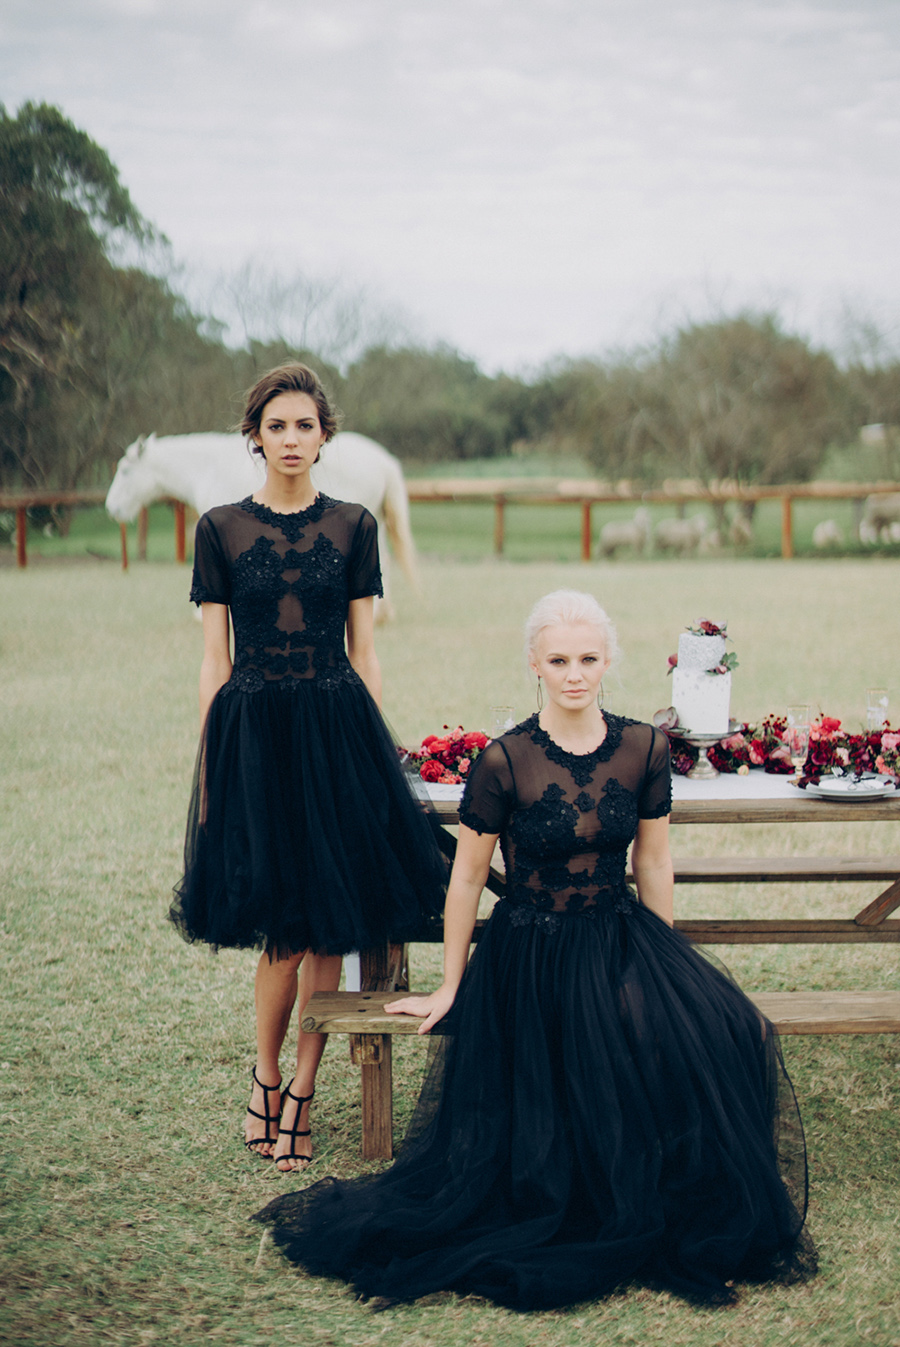 chic black wedding dresses with illusion lace embellished bodices and layered knee or maxi skirts